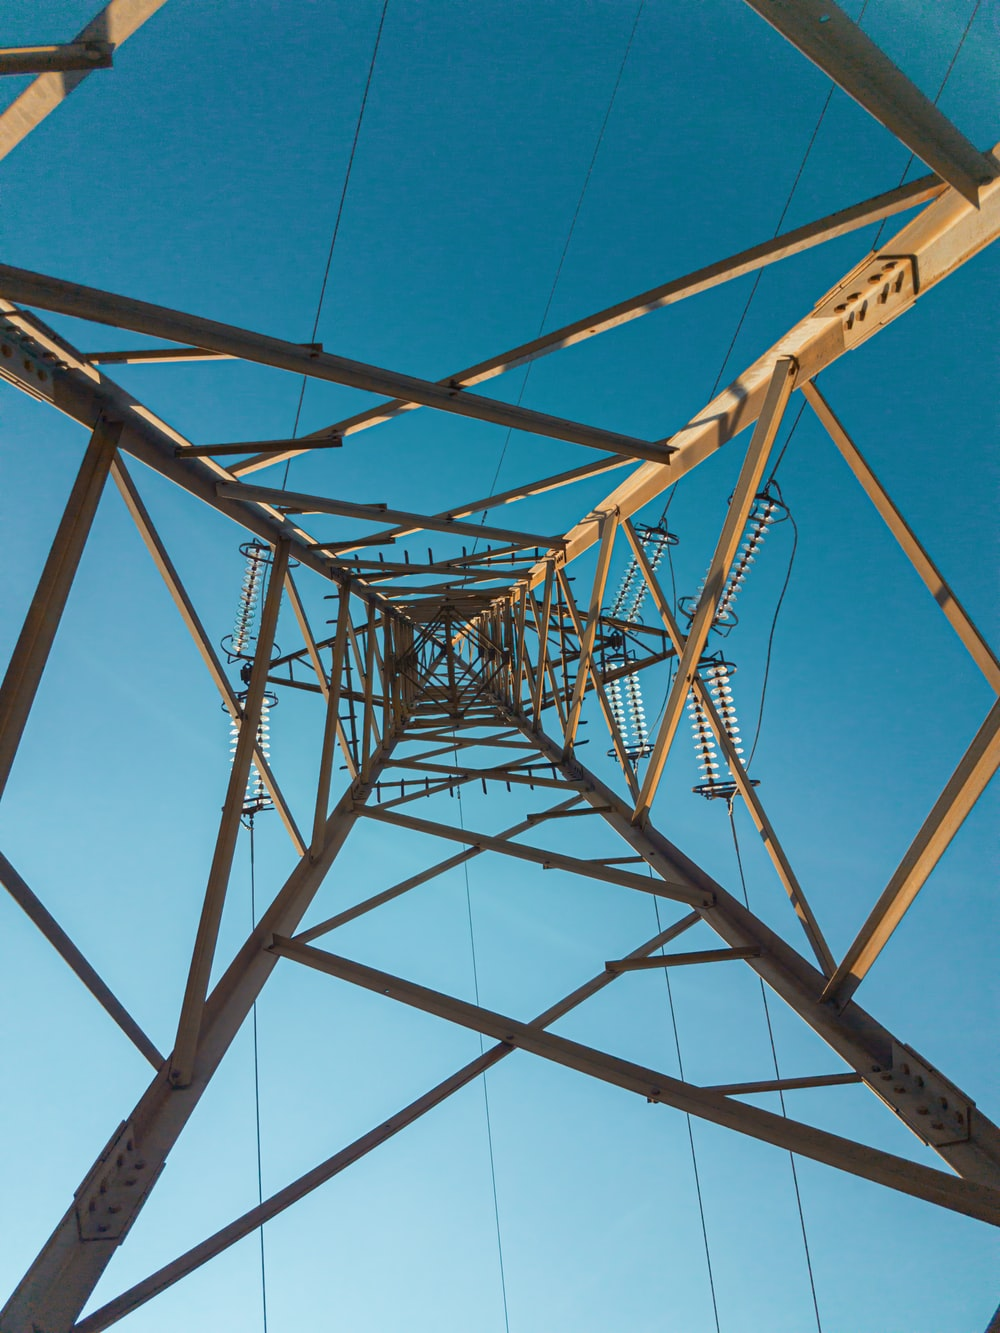 Power lines, cable, electric transmission tower and utility pole